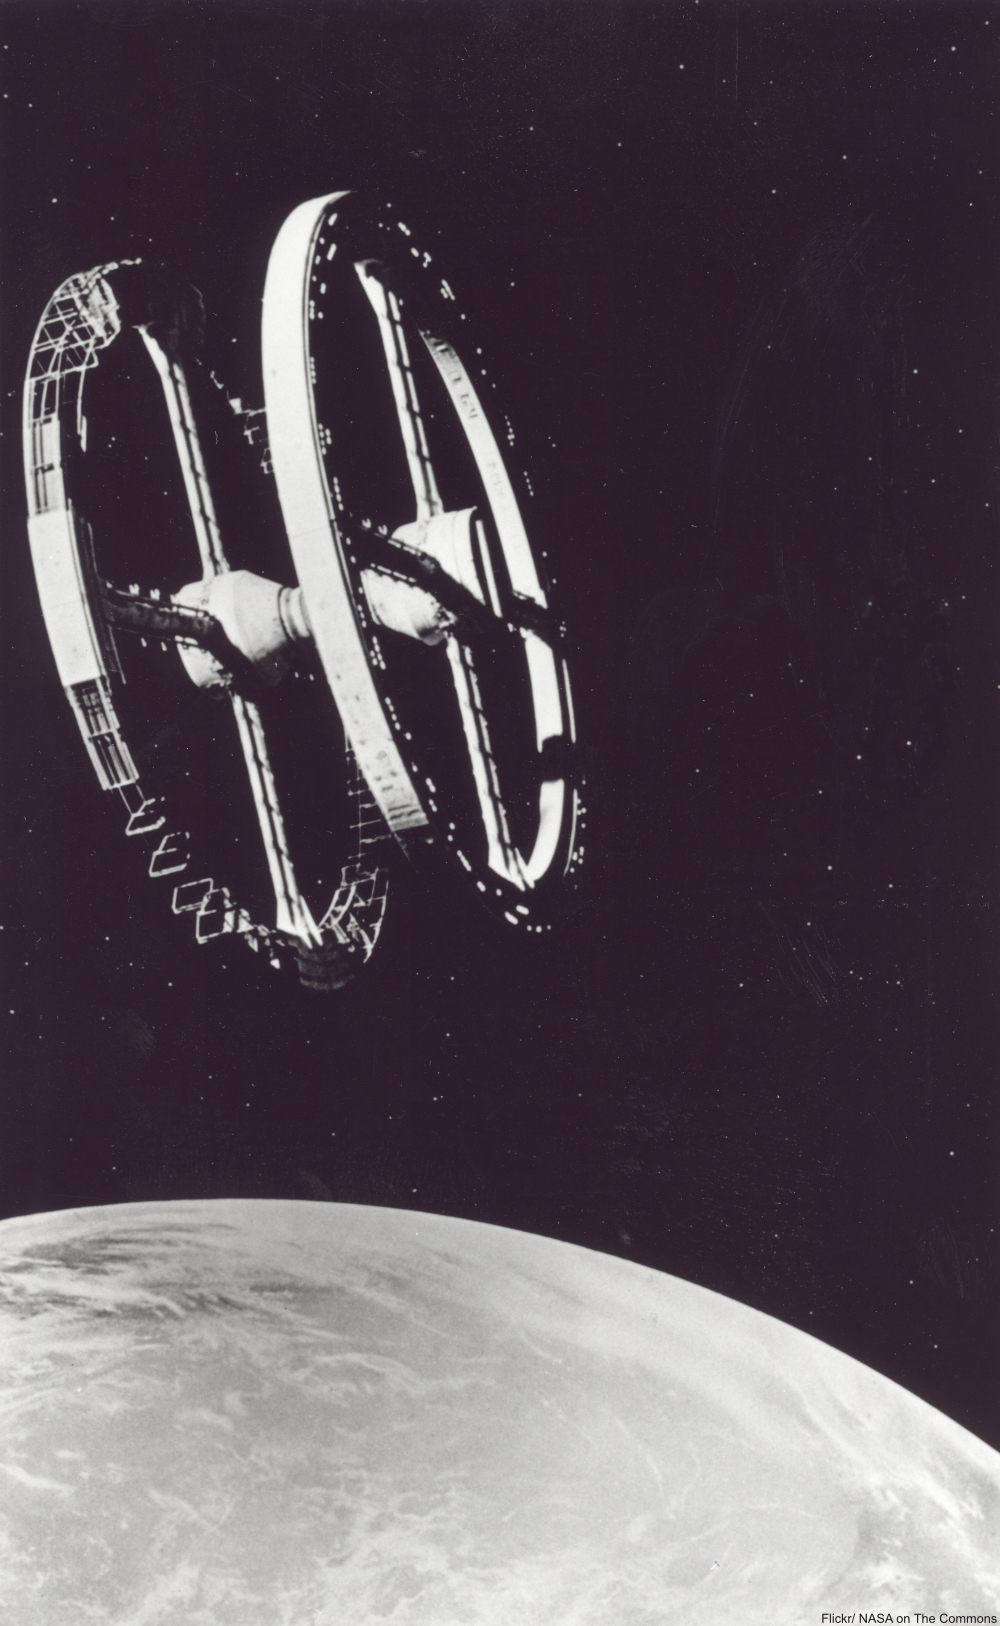 2001:A Space Odyssey Space Station